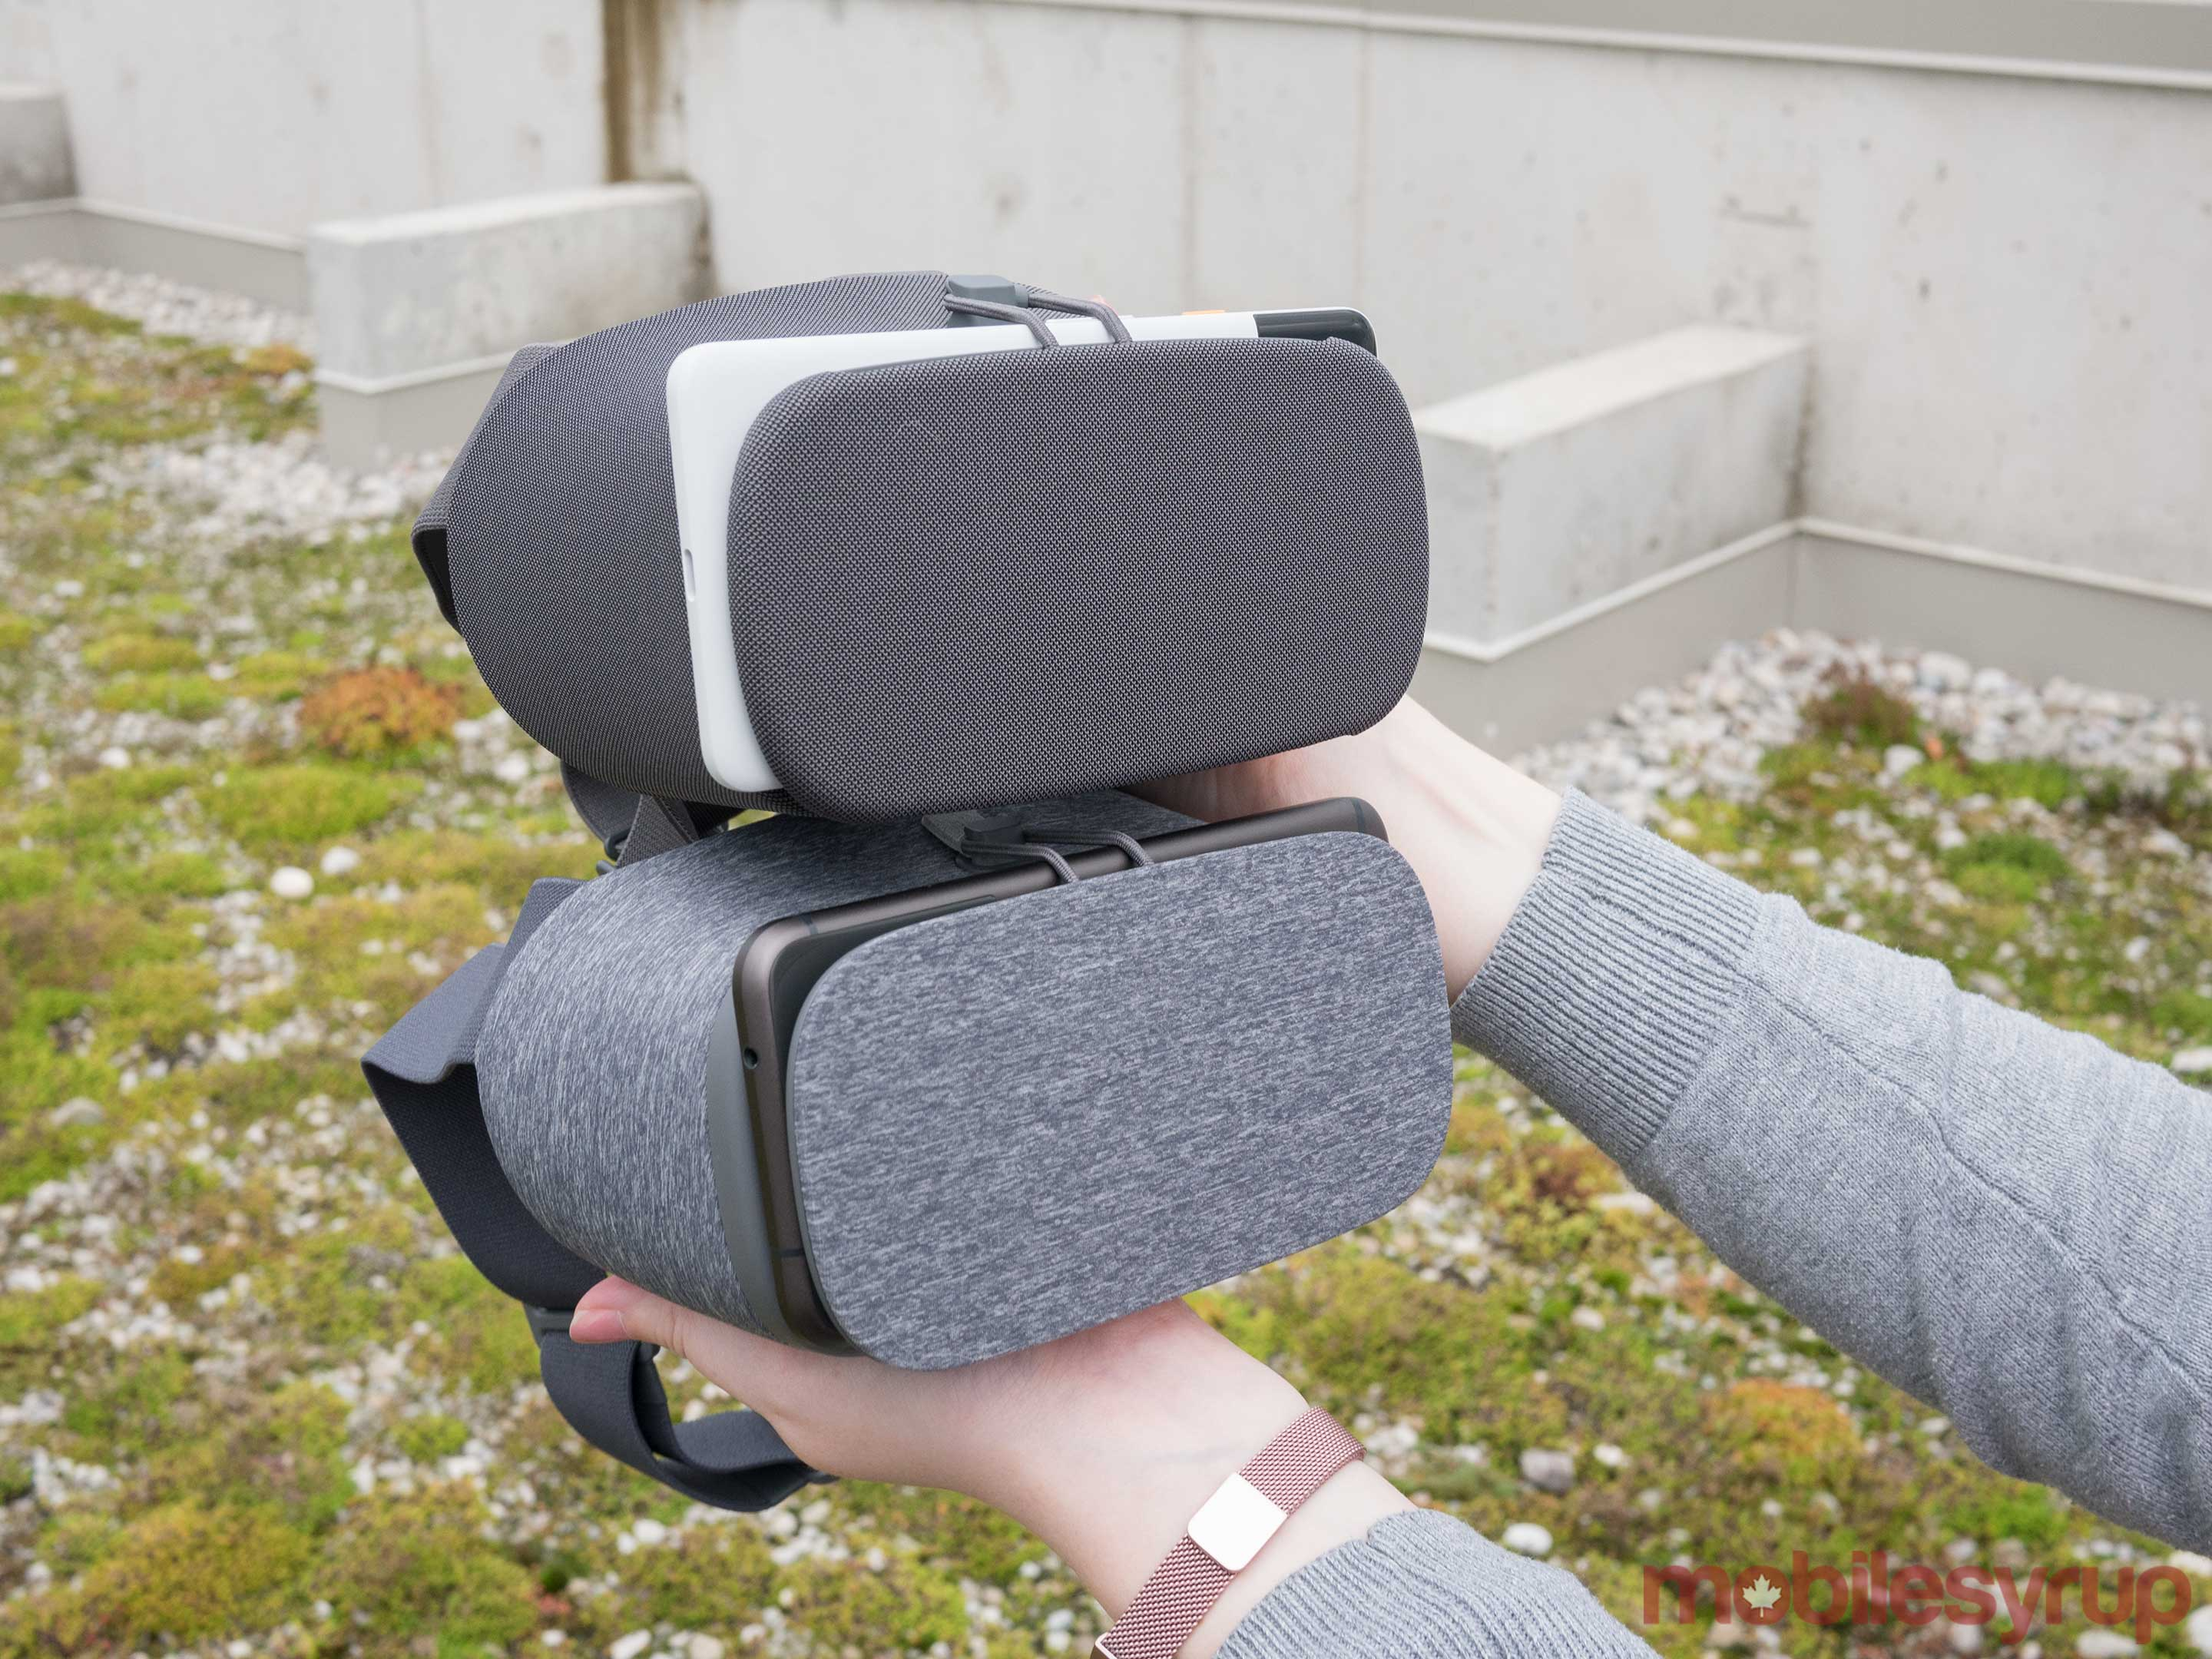 New Daydream View Review: Virtual reality's low-end future